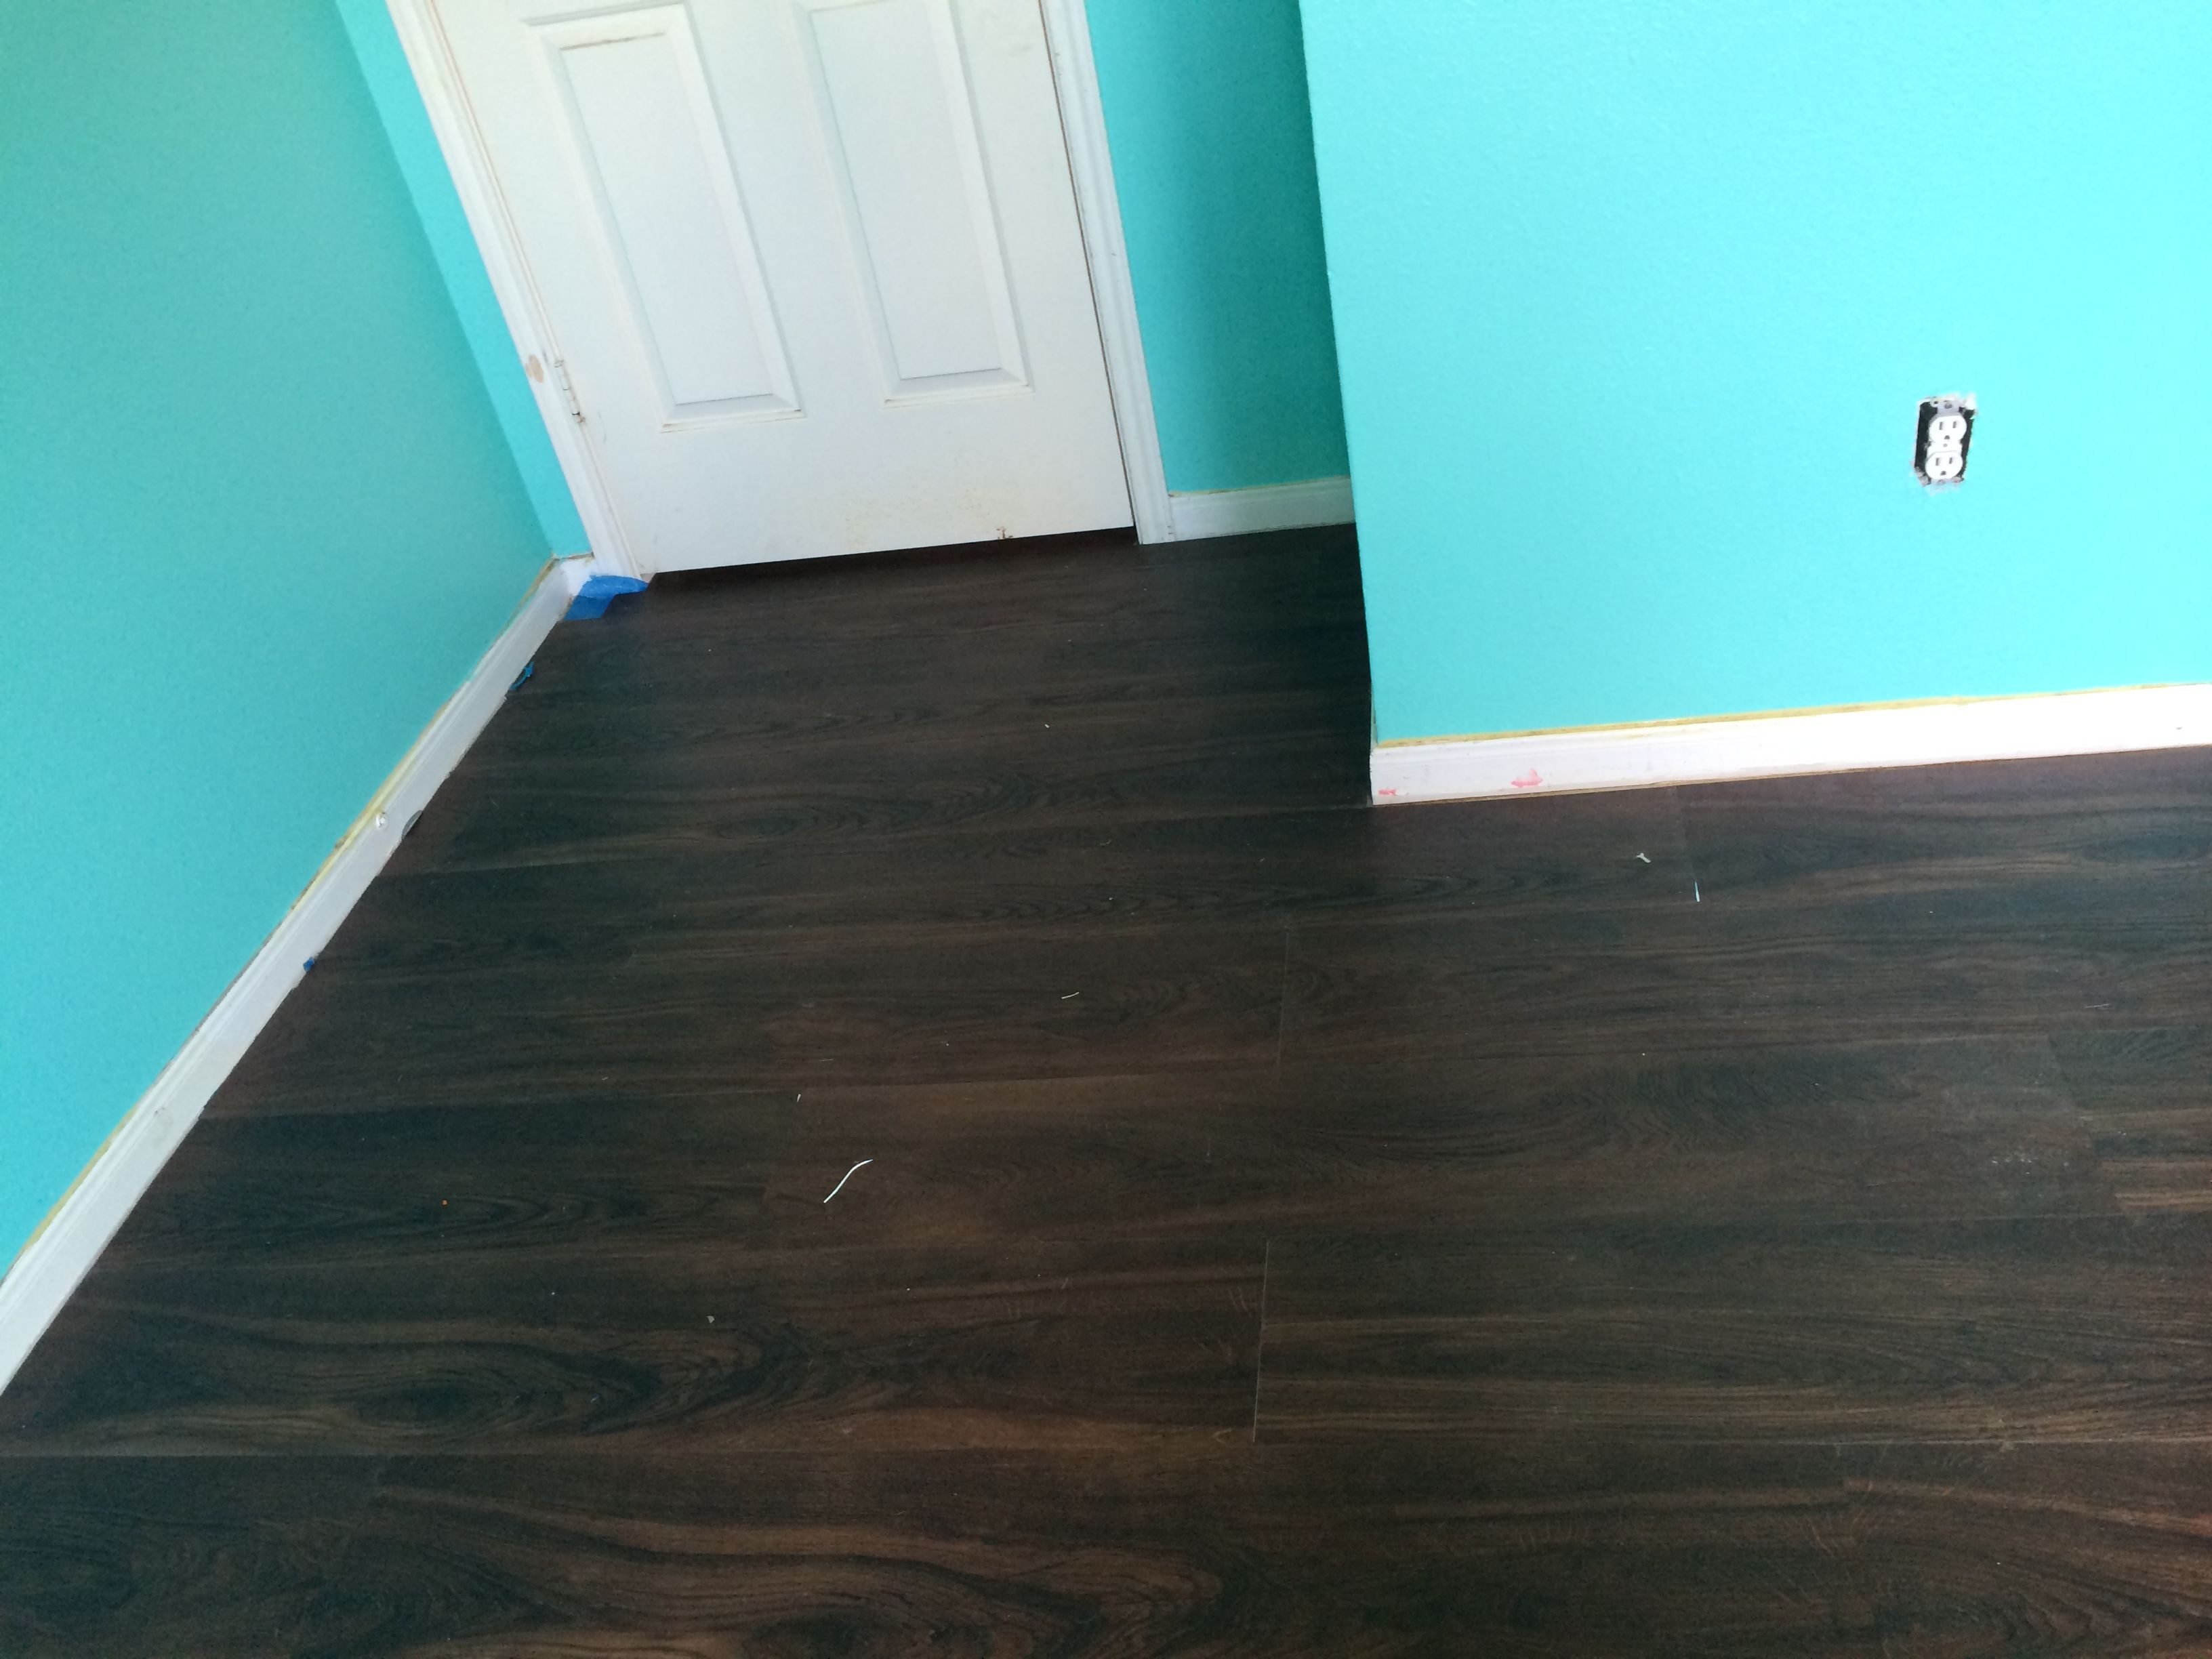 Sherwin Williams Tantalizing Teal Using Their Emerald